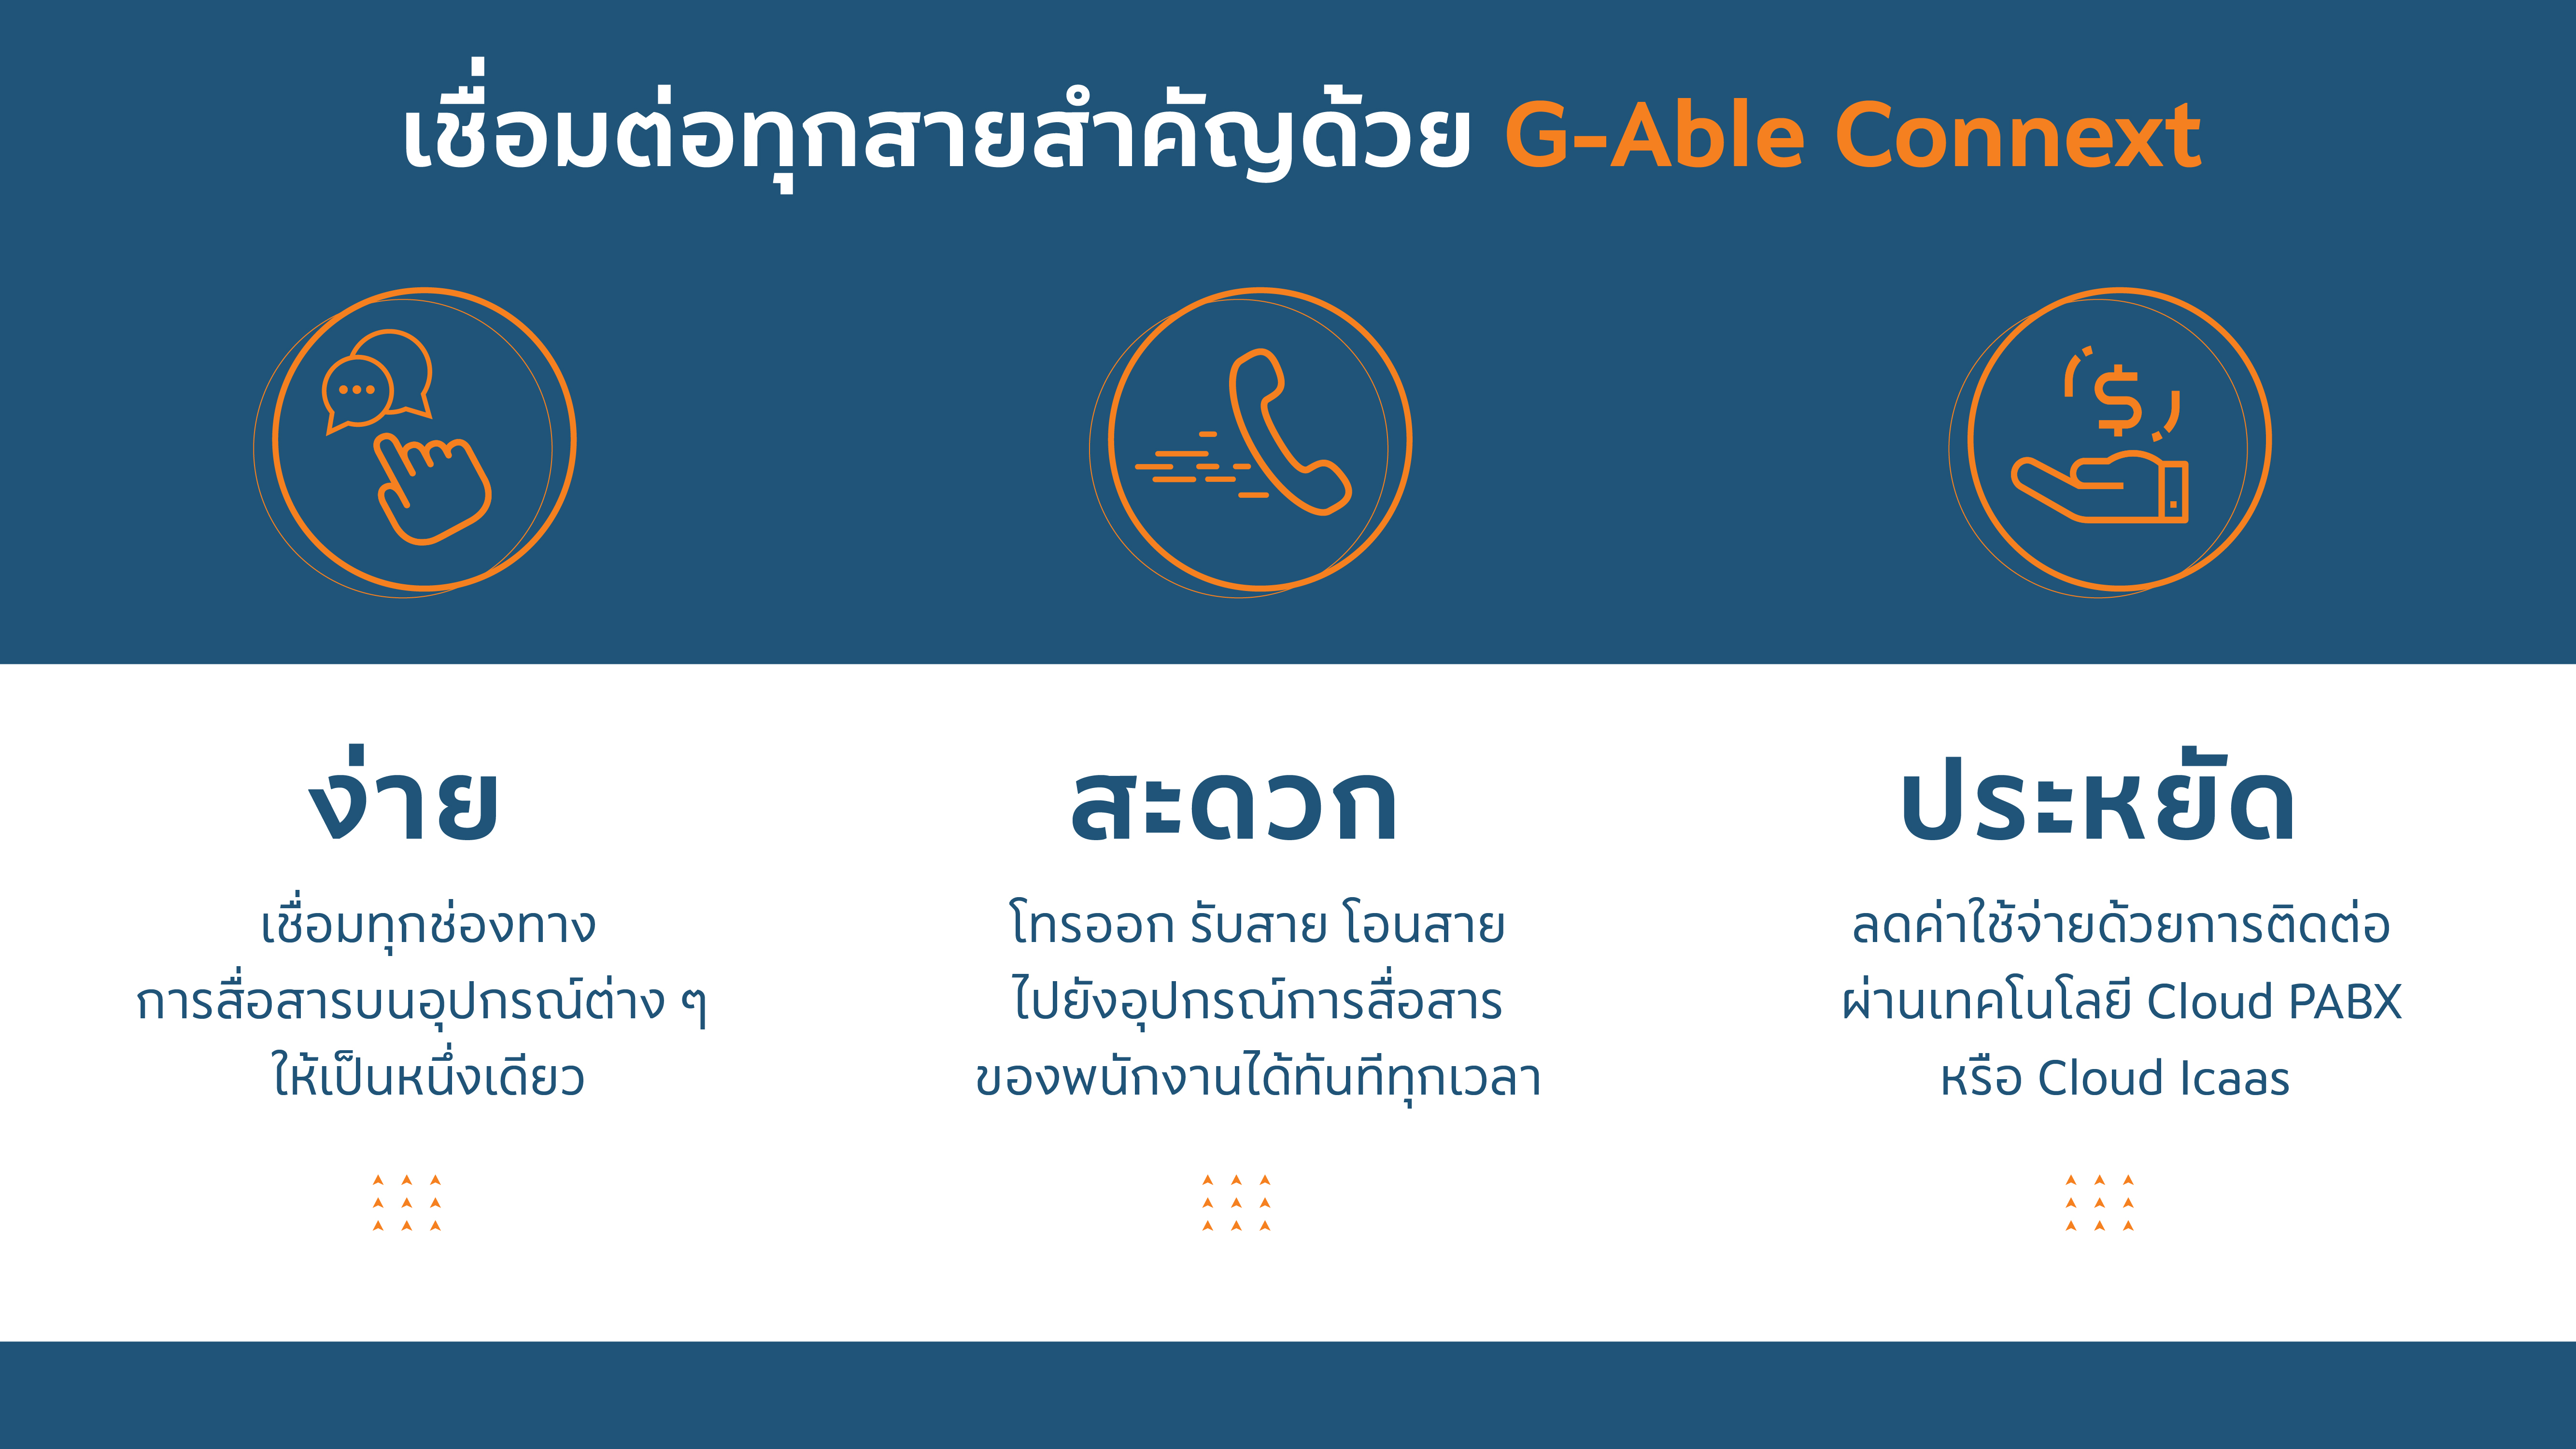 G-able-Connext-features